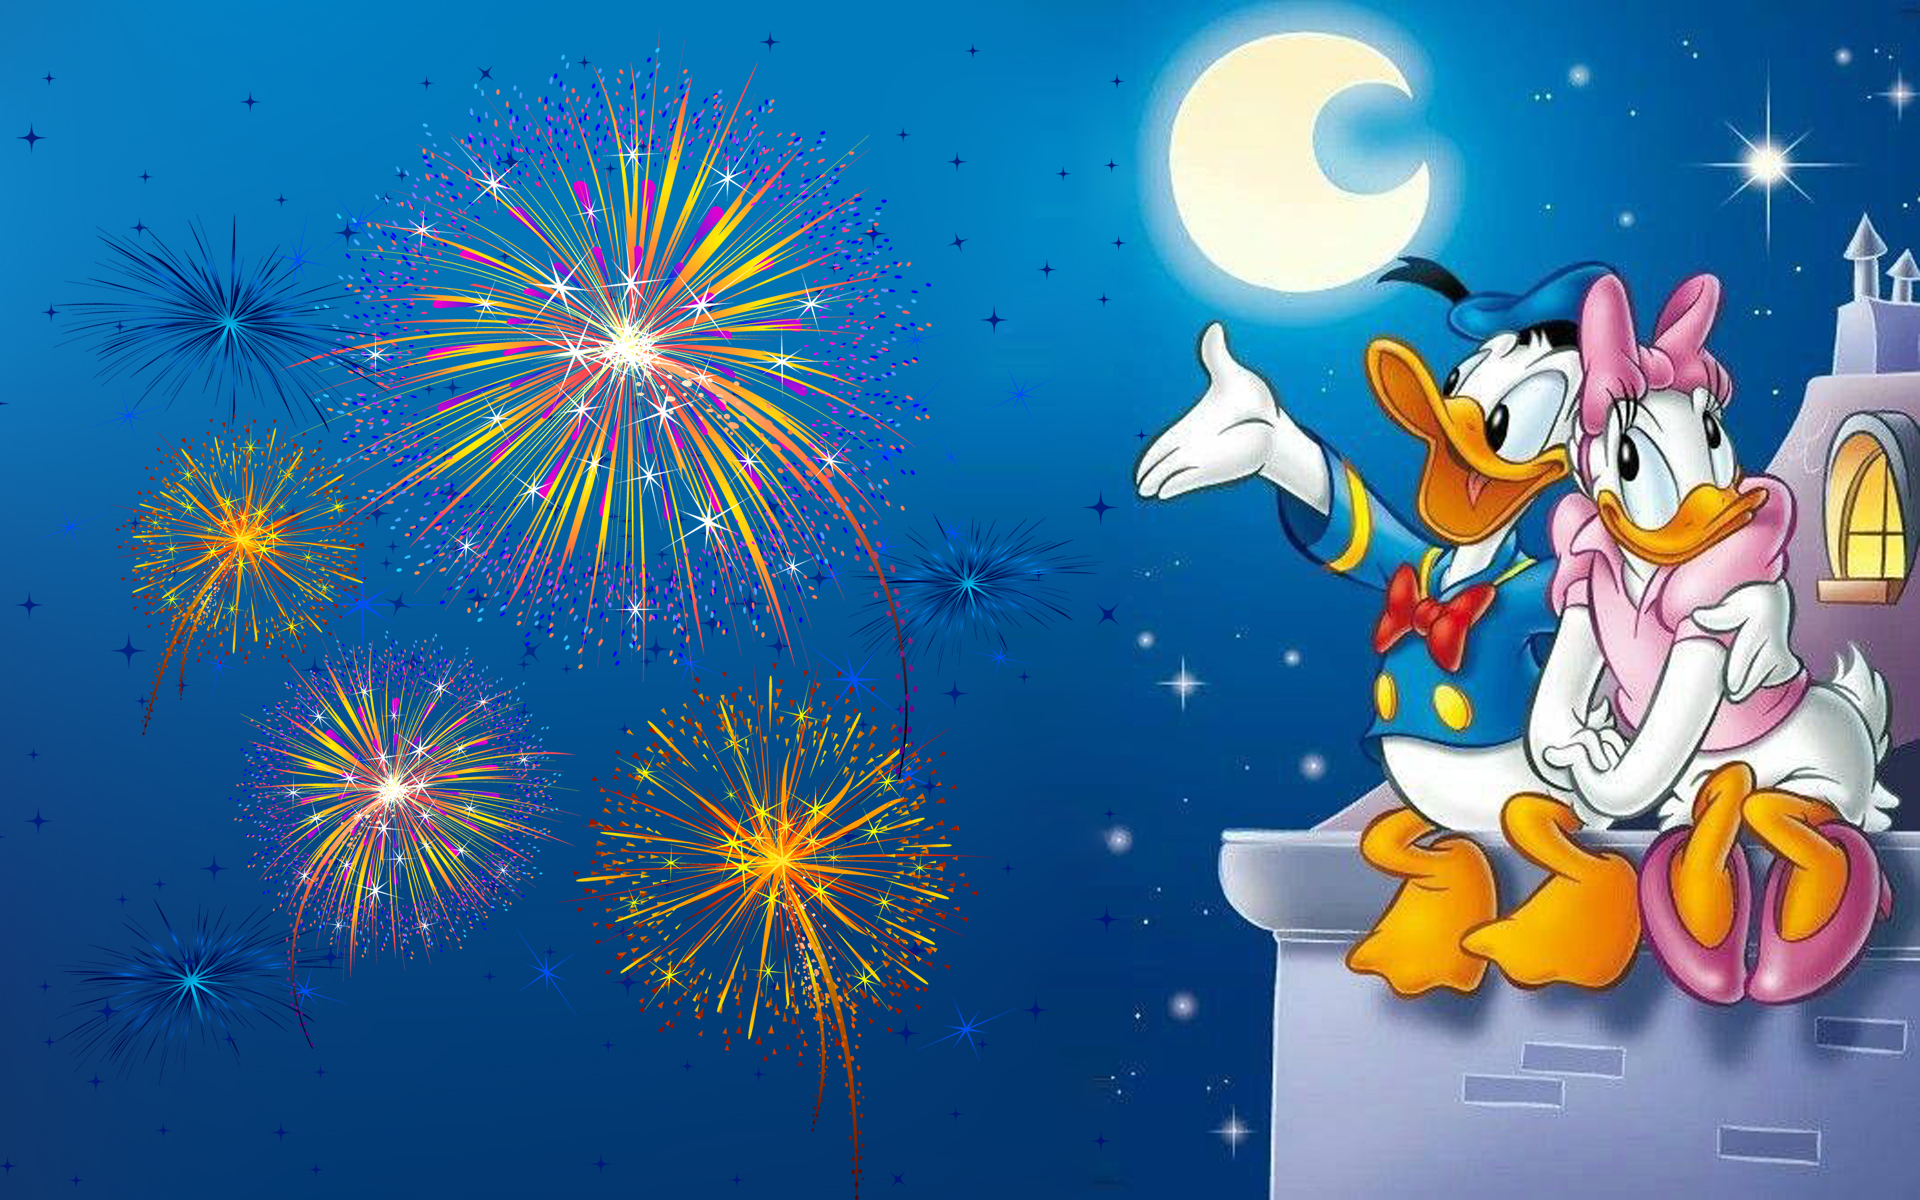 Animated Christmas Desktop Wallpaper Free Download Donald Duck And Daisy Duck Romantic Evening Watching The